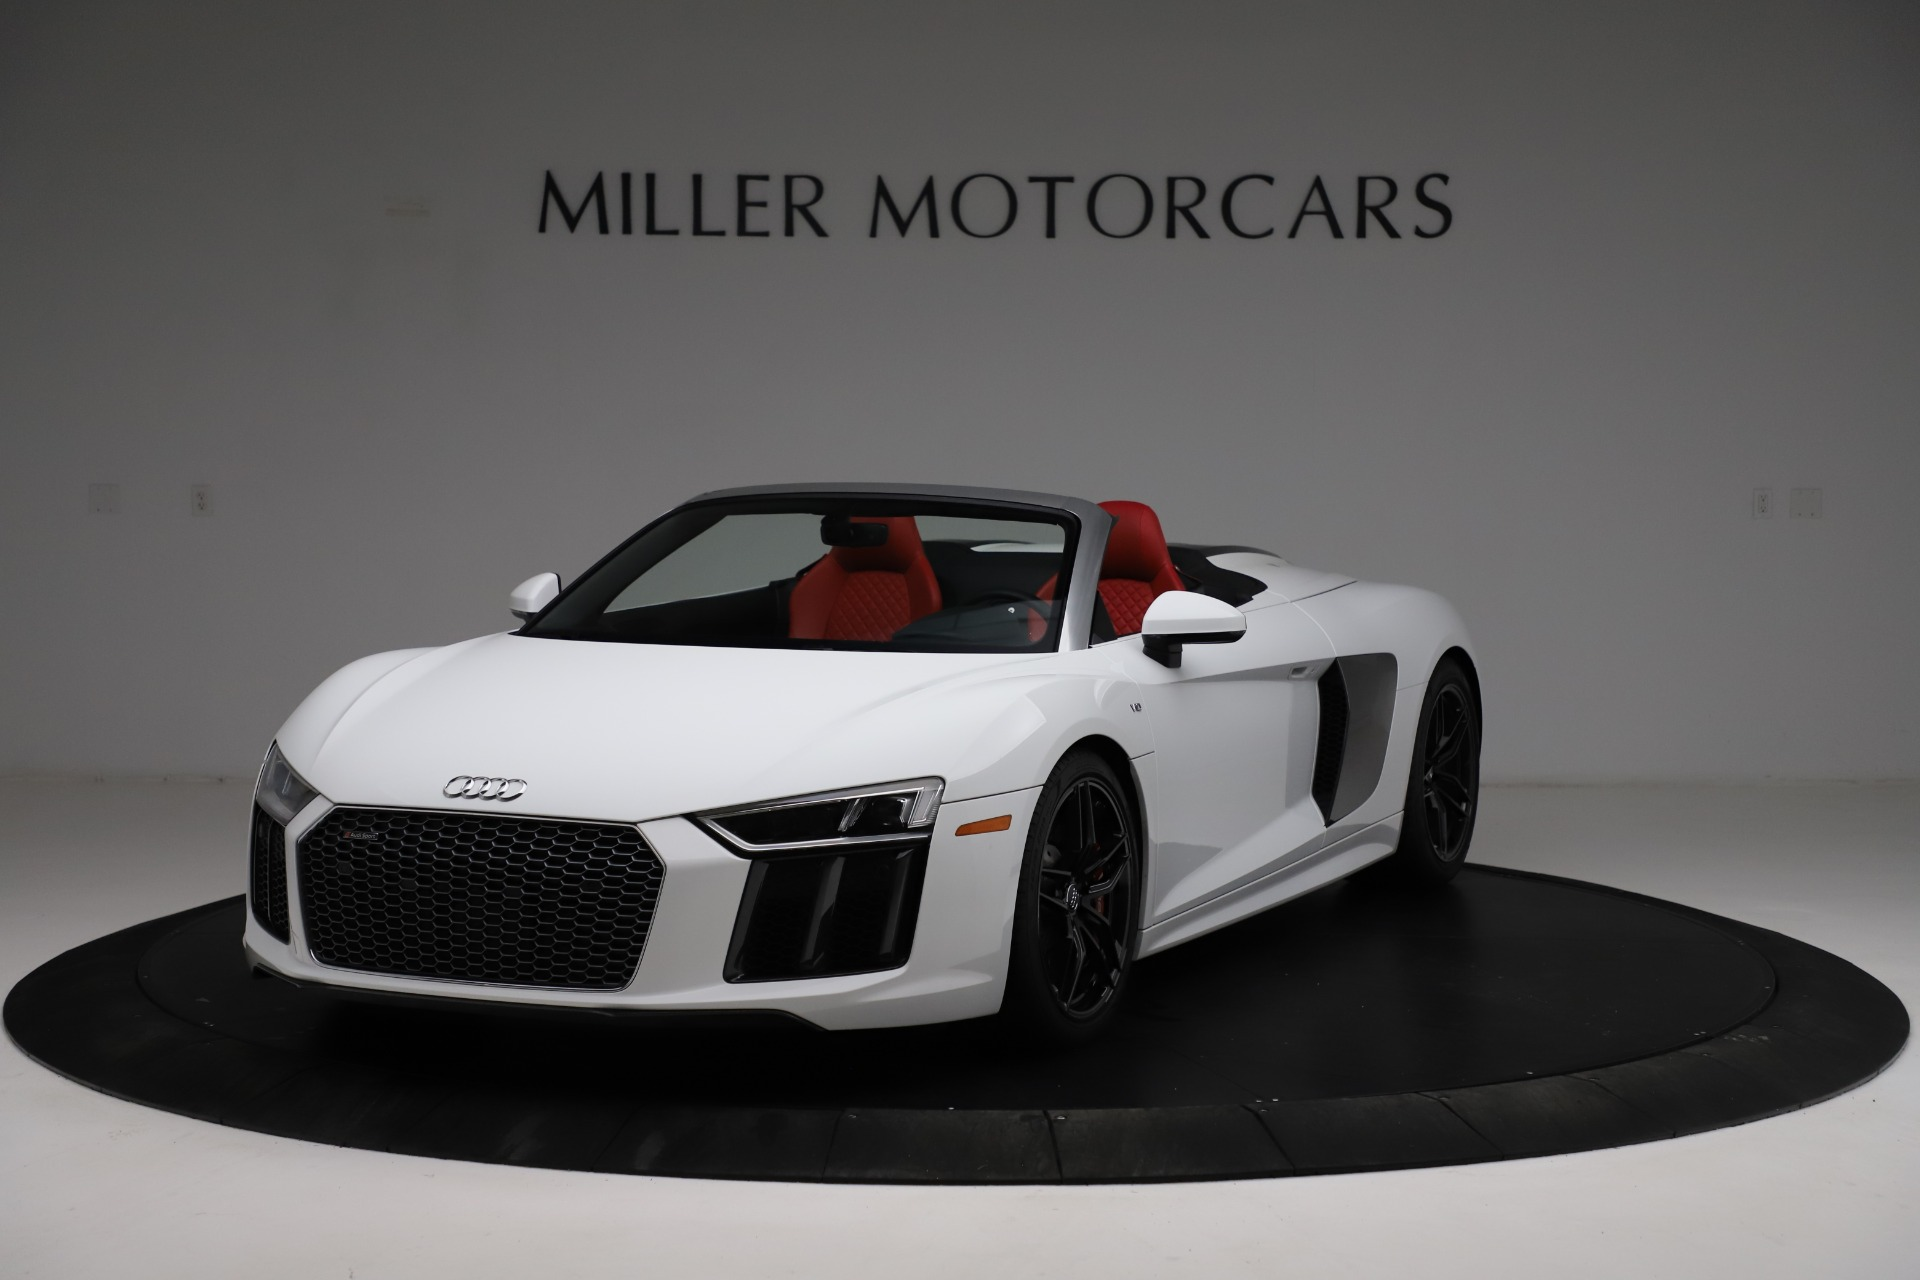 Used 2018 Audi R8 Spyder for sale $154,900 at Alfa Romeo of Westport in Westport CT 06880 1